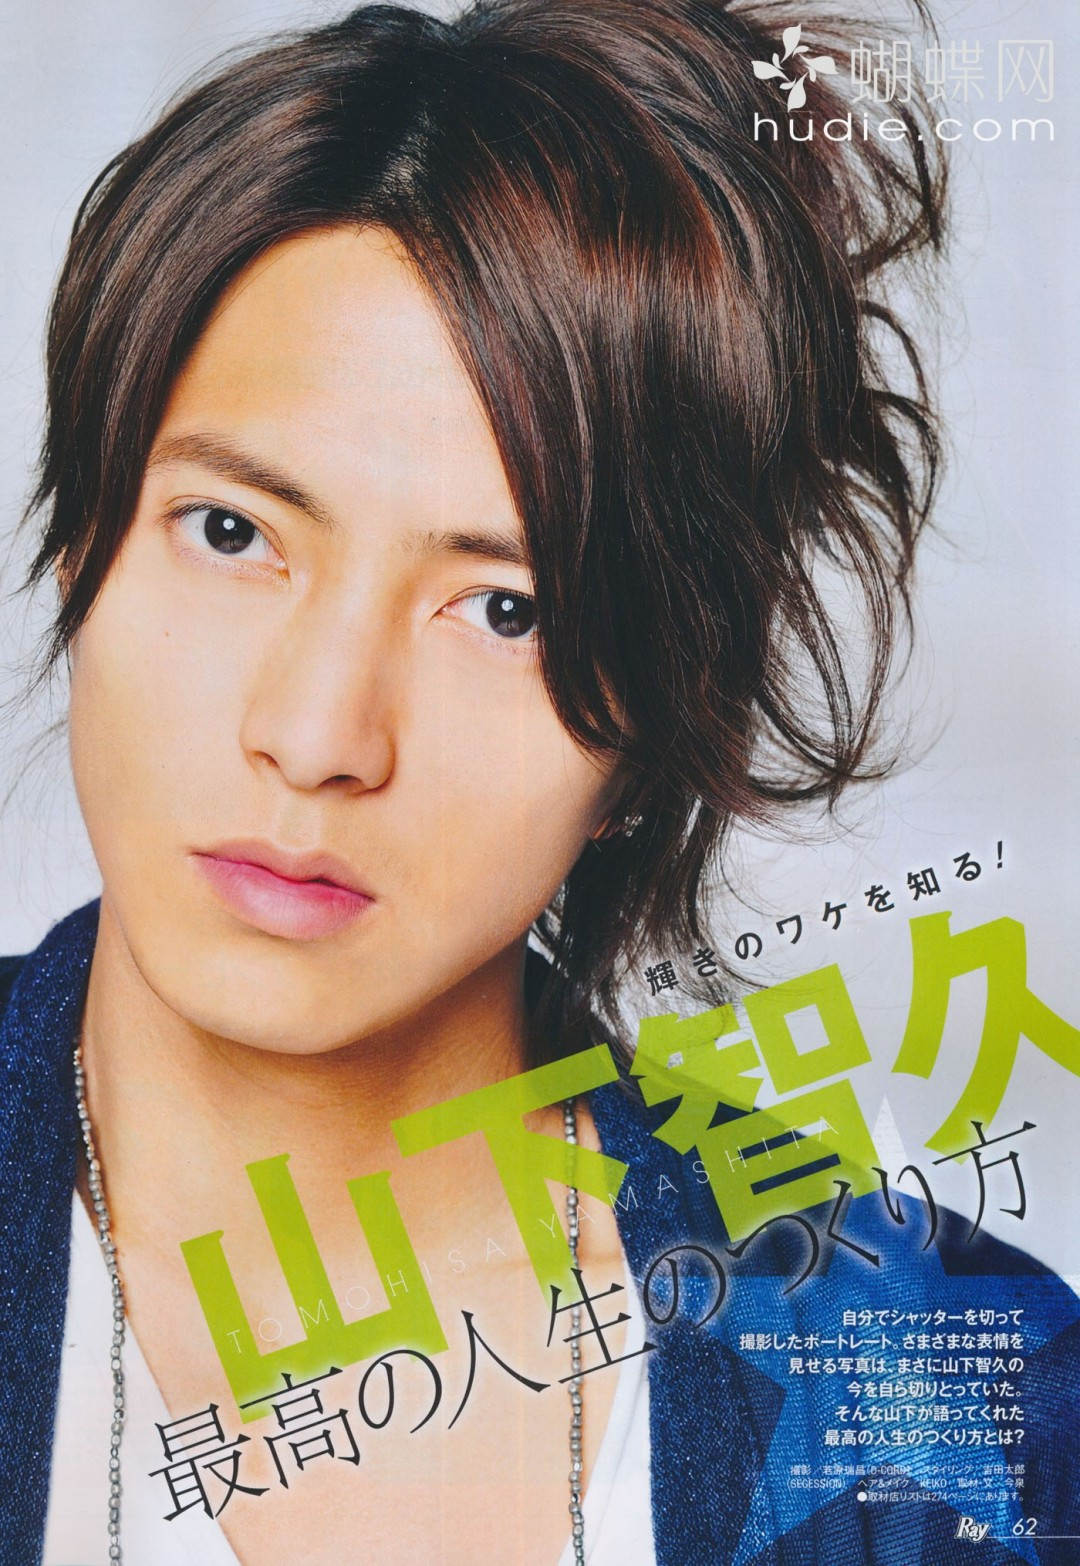 From Ray magazine (April 2012)